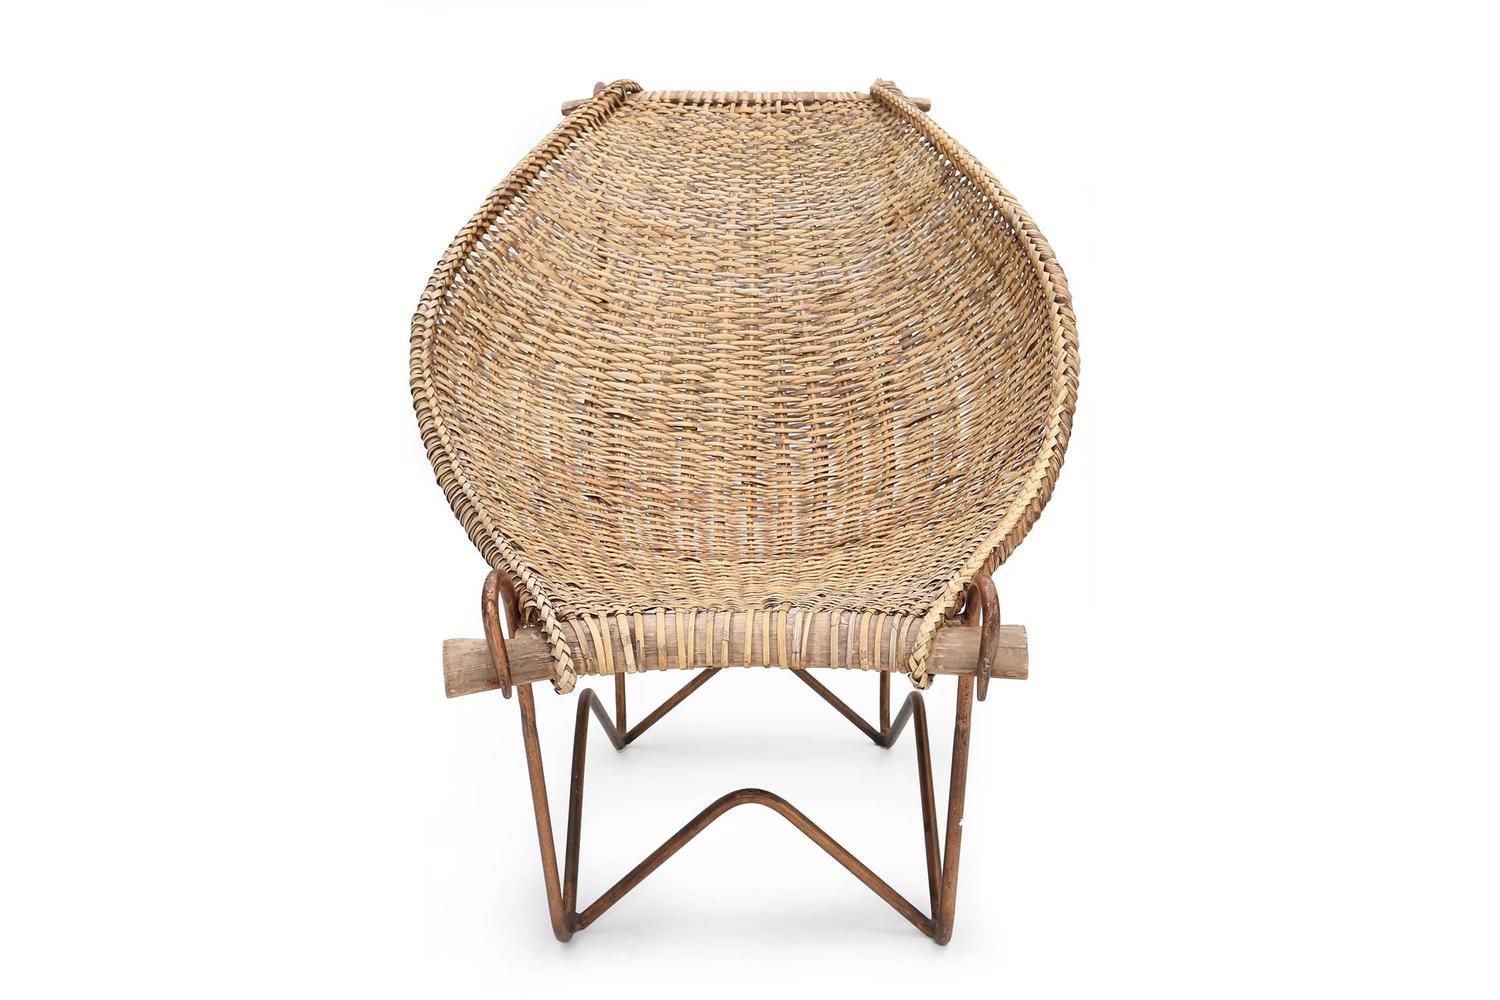 wicker chairs for sale sweet 16 chair decorations duyan at 1stdibs